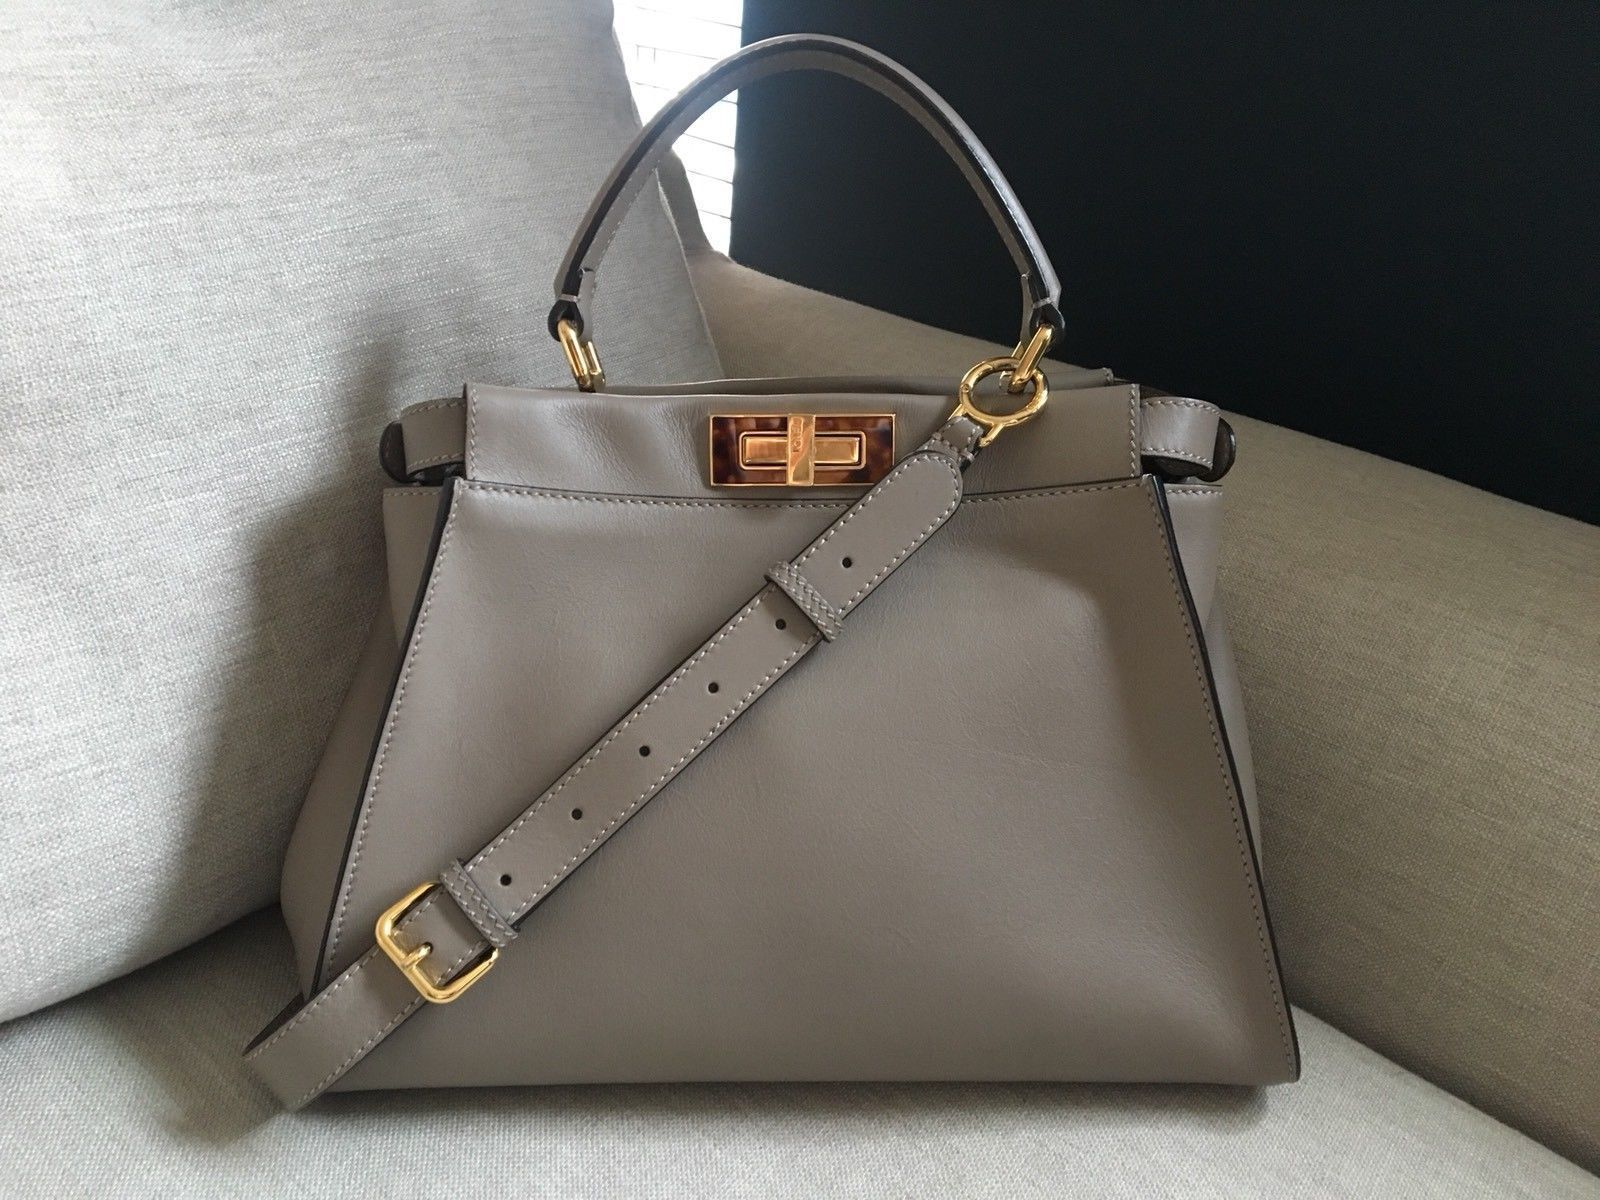 0d11c28b15 Rare Medium Fendi Peekaboo Bag- In Dove GREY